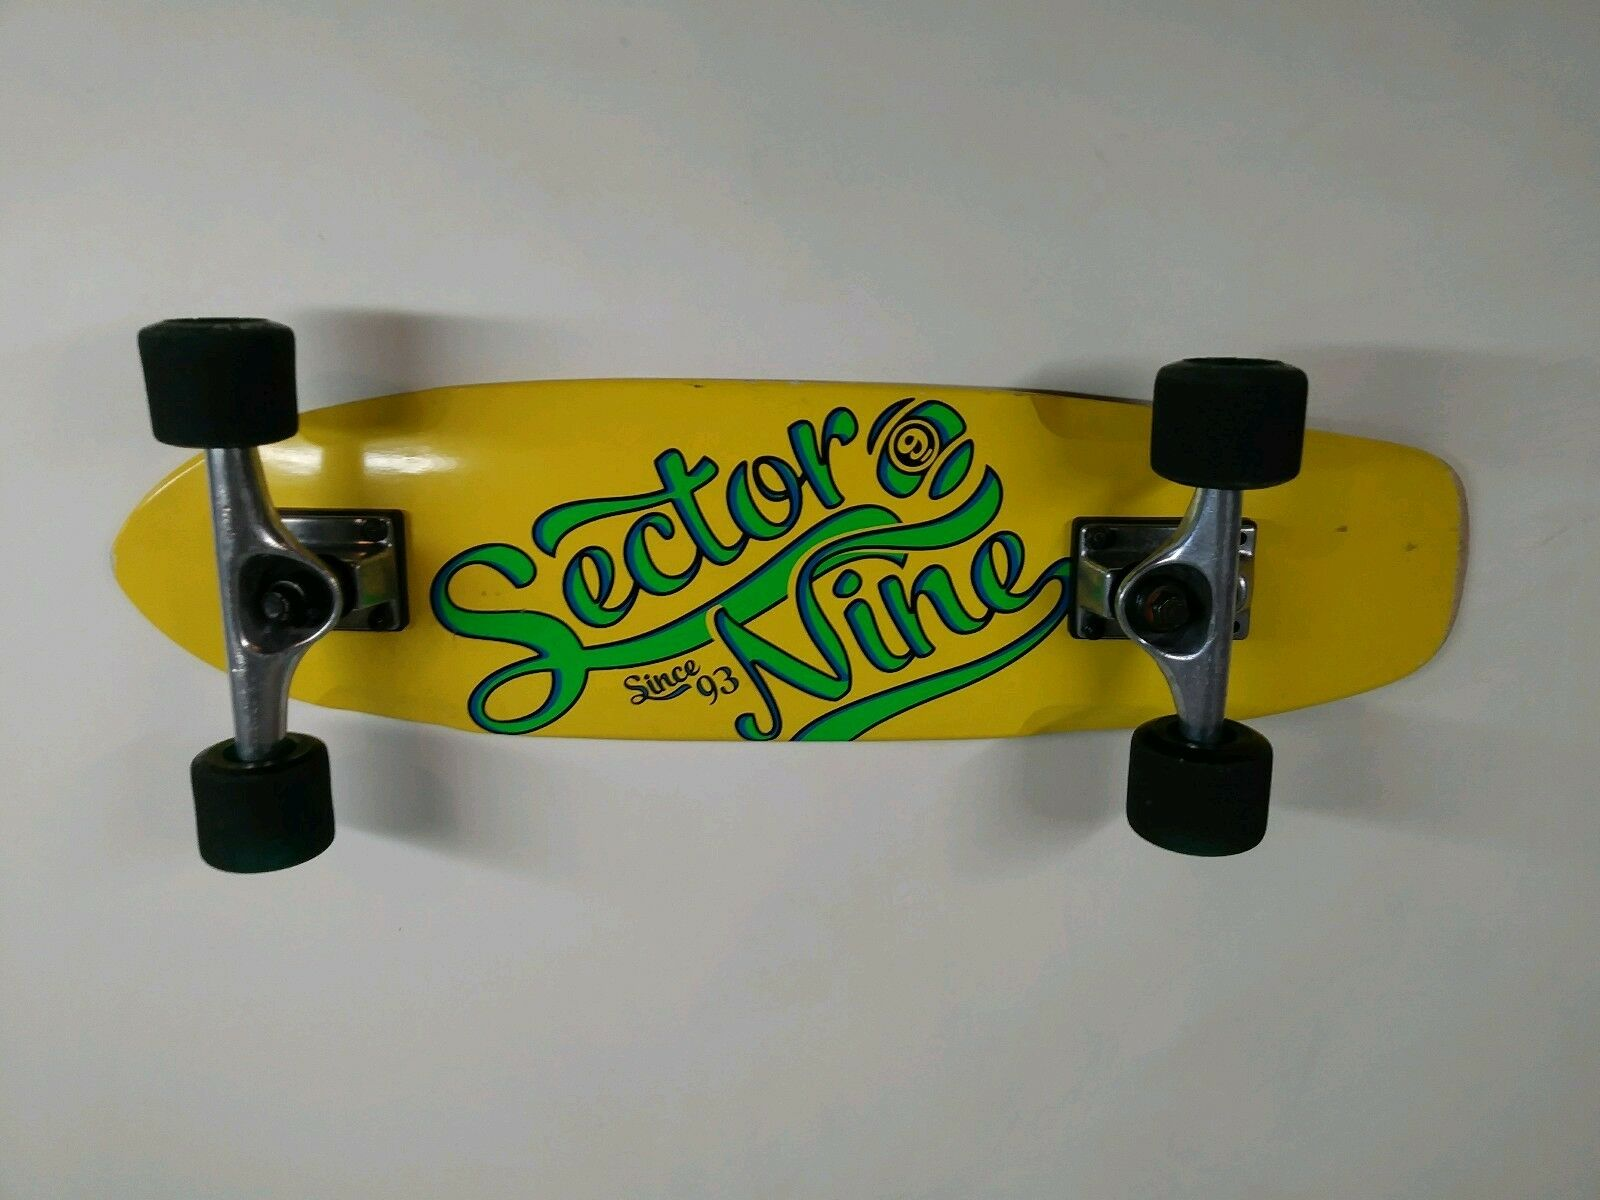 Sector 9 Penny Board style mini Cruiser Complete Sz 25.6 x 6.75in yellow